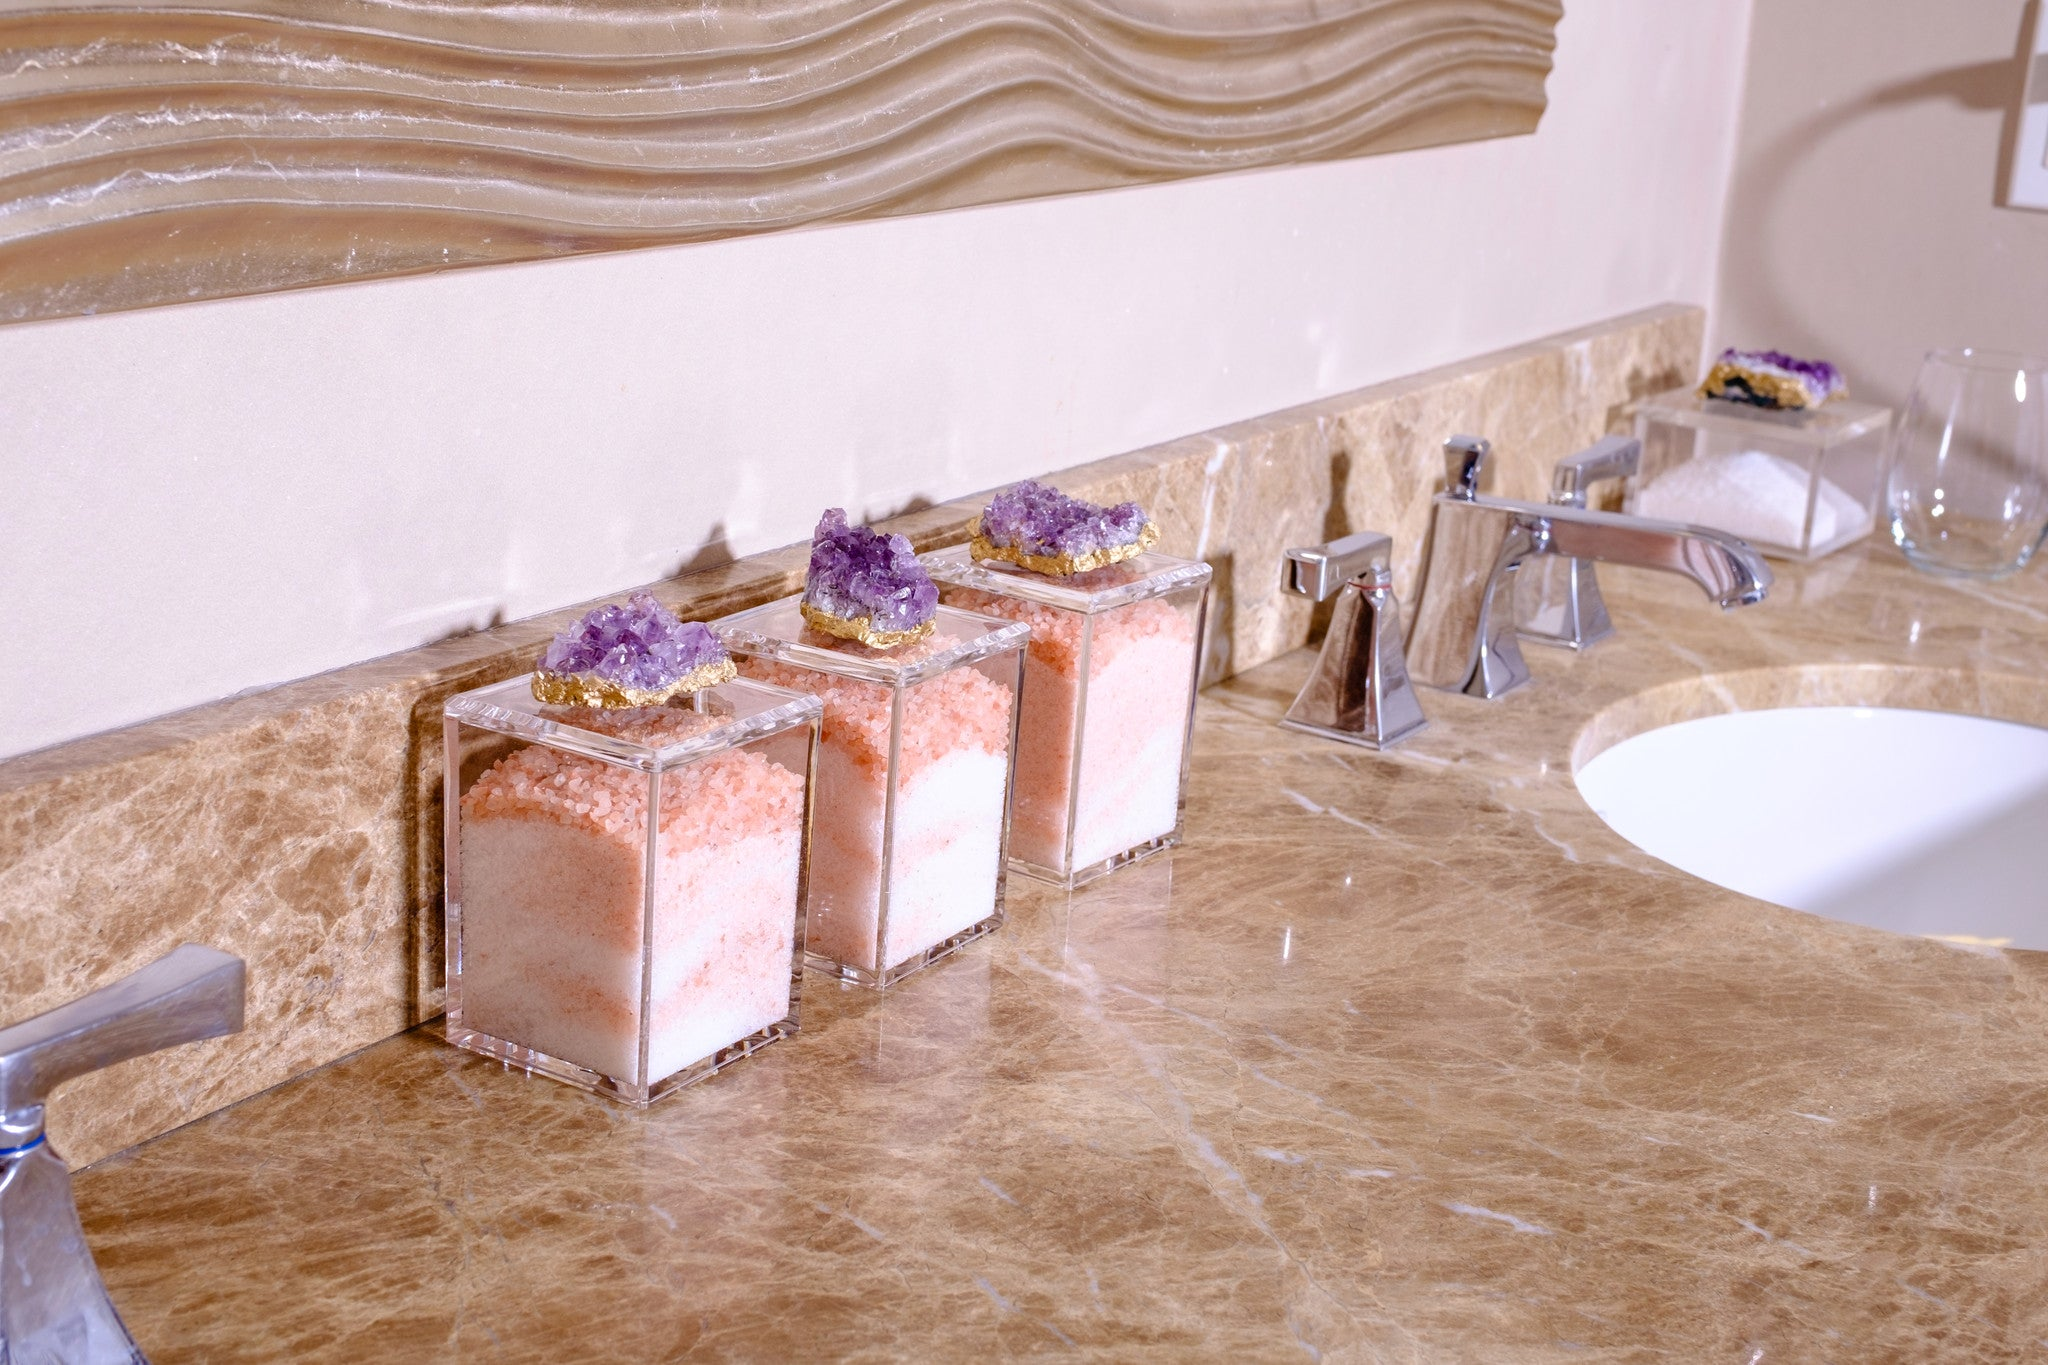 spa acrylic containers with amethyst for your bathsalts.